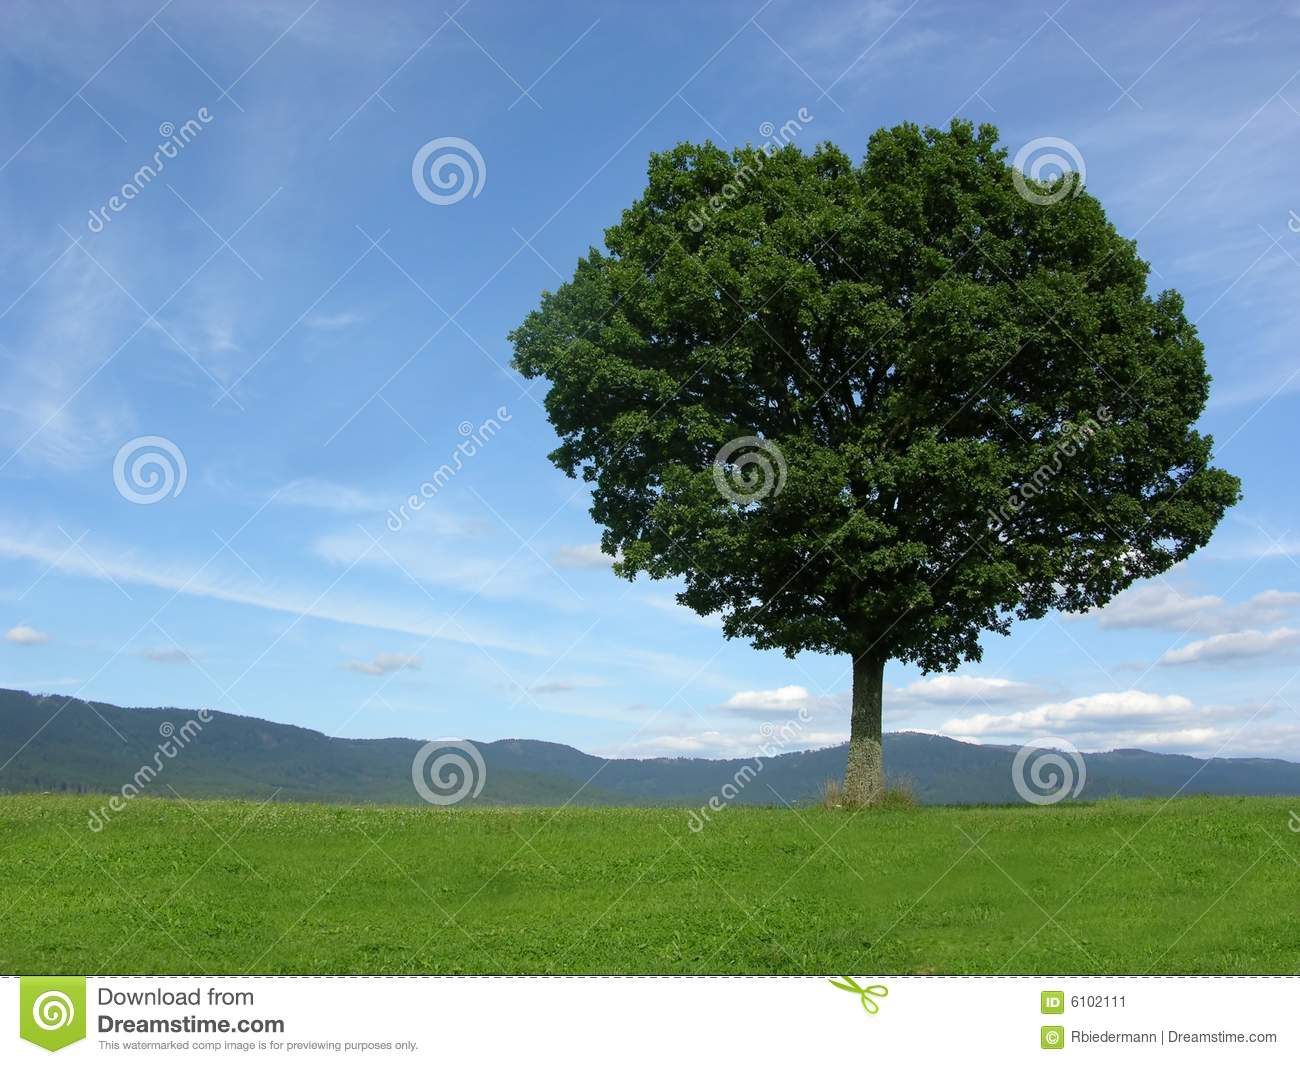 Landscape scenery with solitary tree